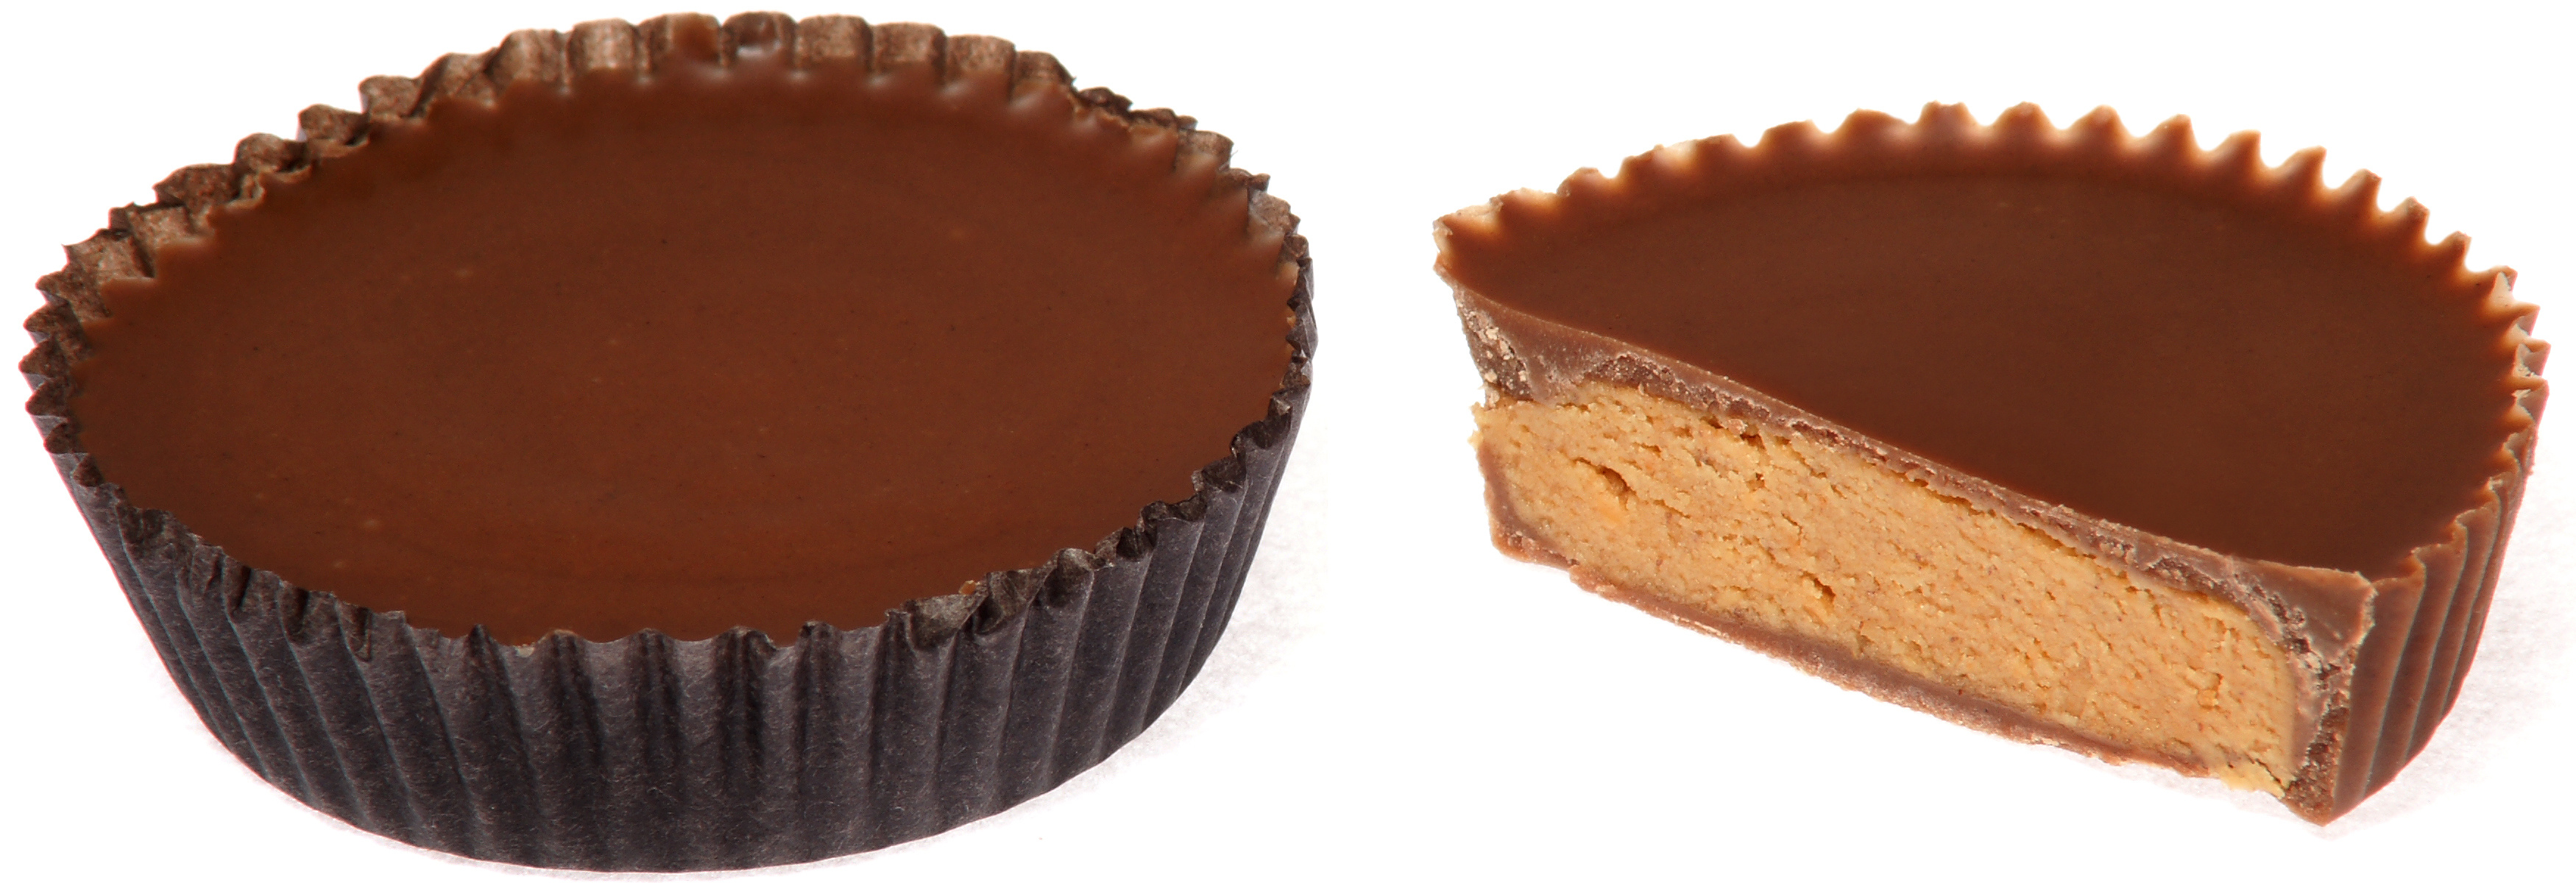 Process Management, Knowledge Management, and Reese's® Peanut Butter Cups